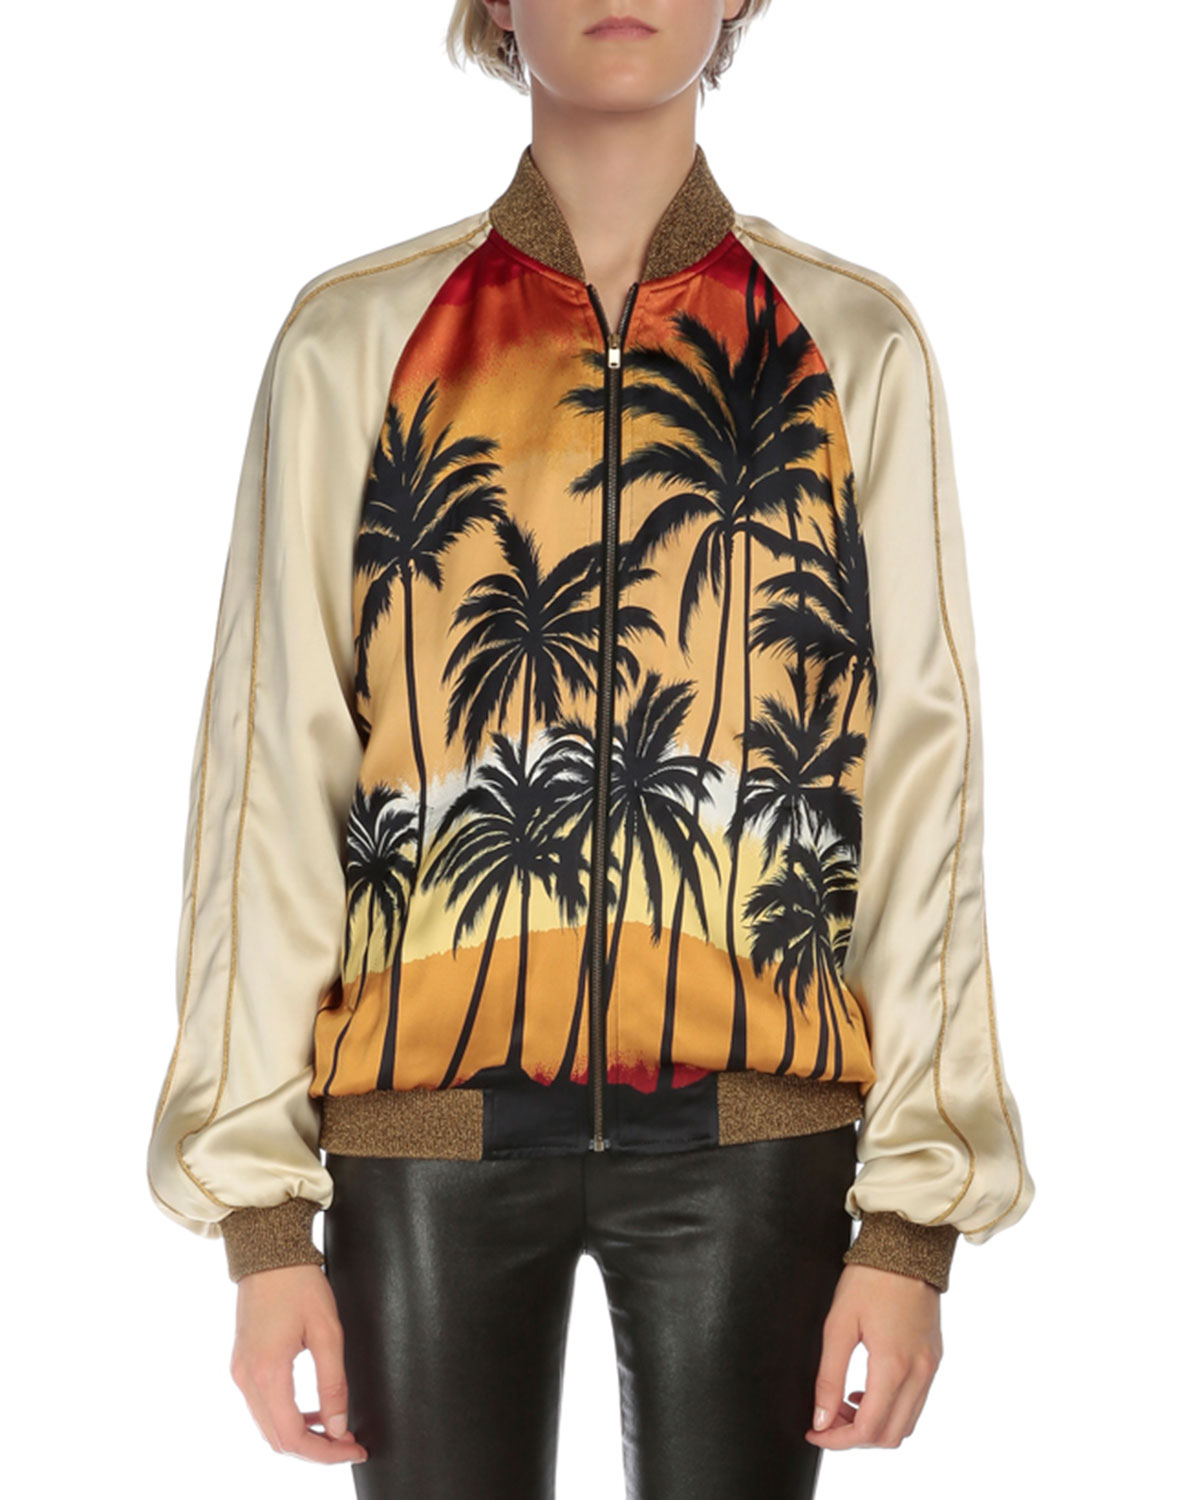 Palm-Tree Bomber Jacket, Red/Black/Yellow